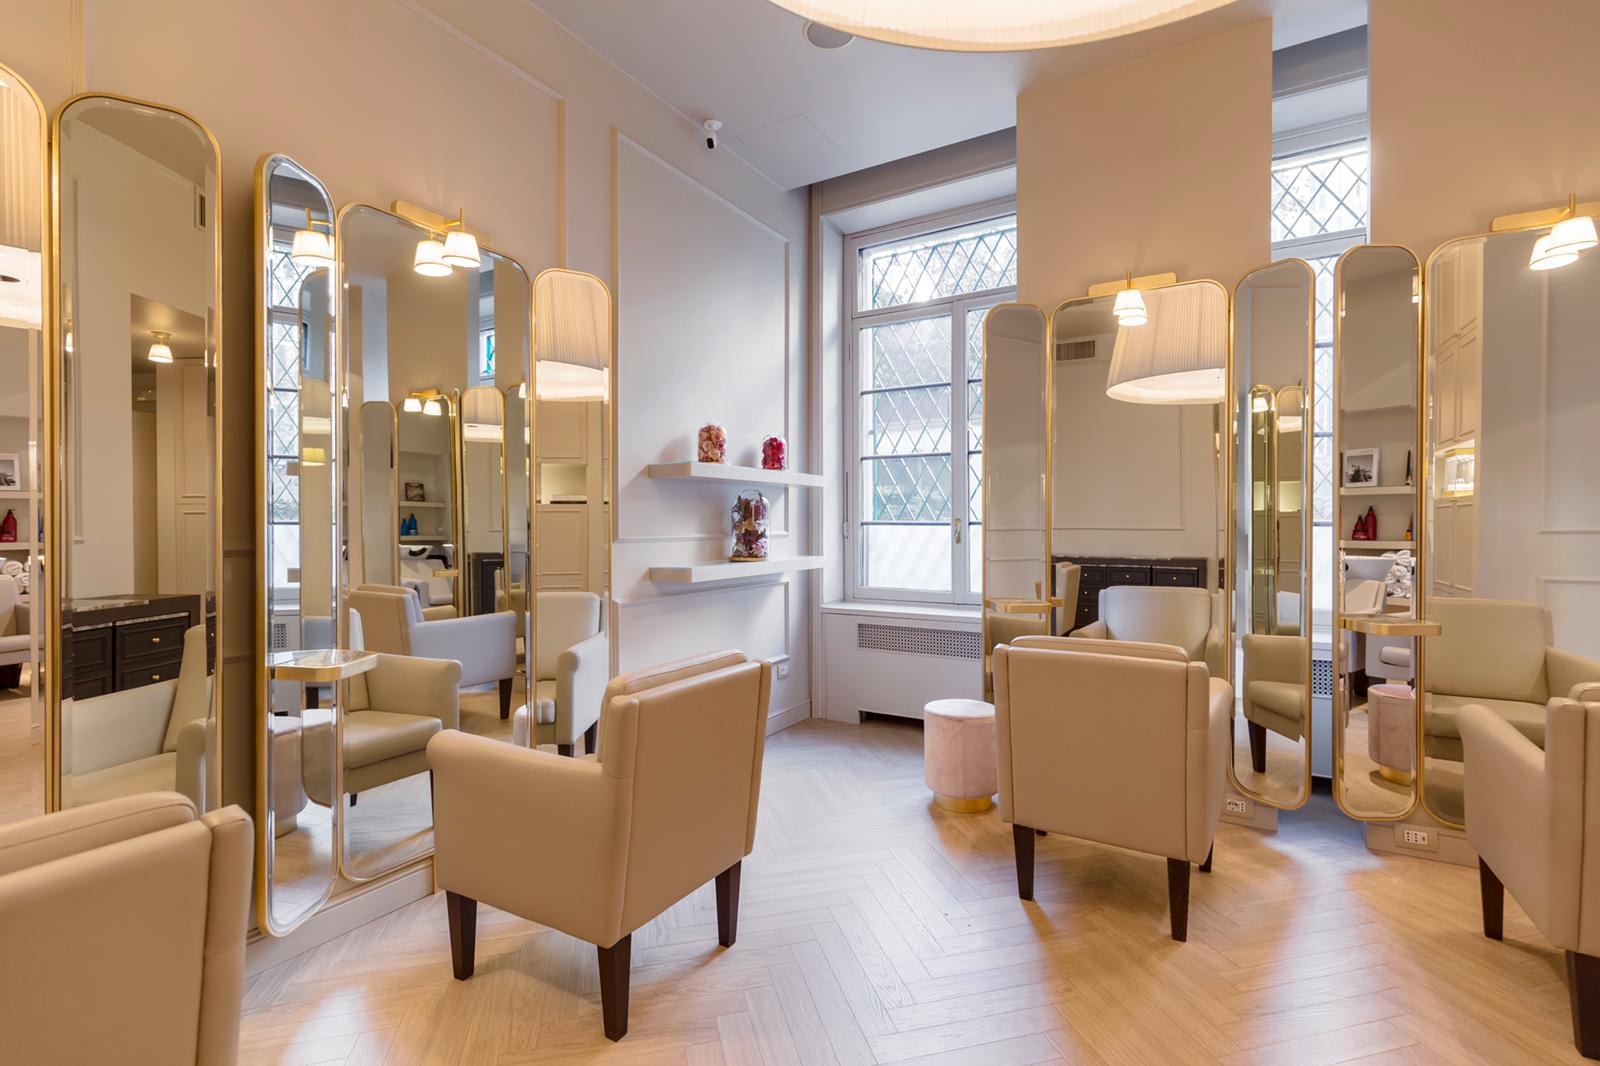 Beautick luxury beauty salon in Milan